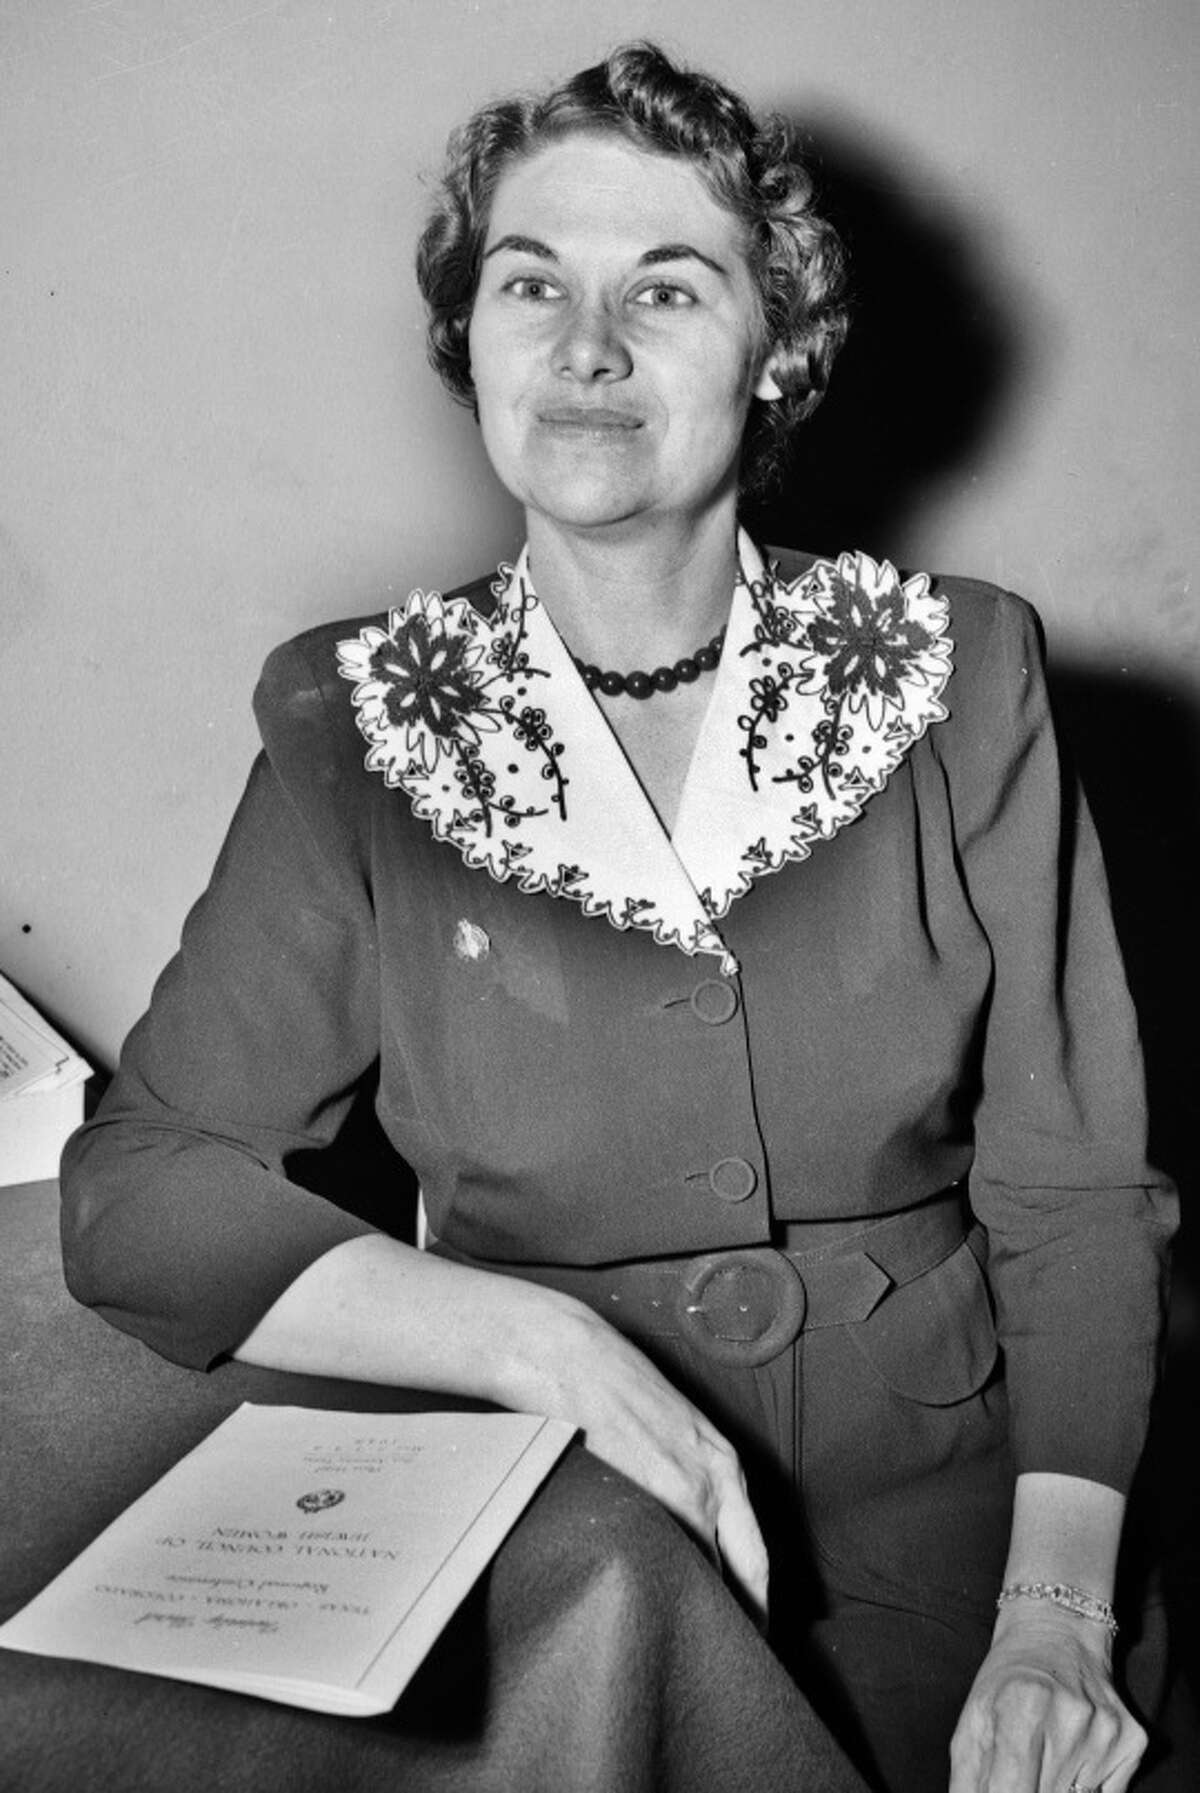 Frances Rosenthal Kallison, shown in 1948, was known partly for doing research on Texas Jews and as an advocate of the poor. She died in 2004.